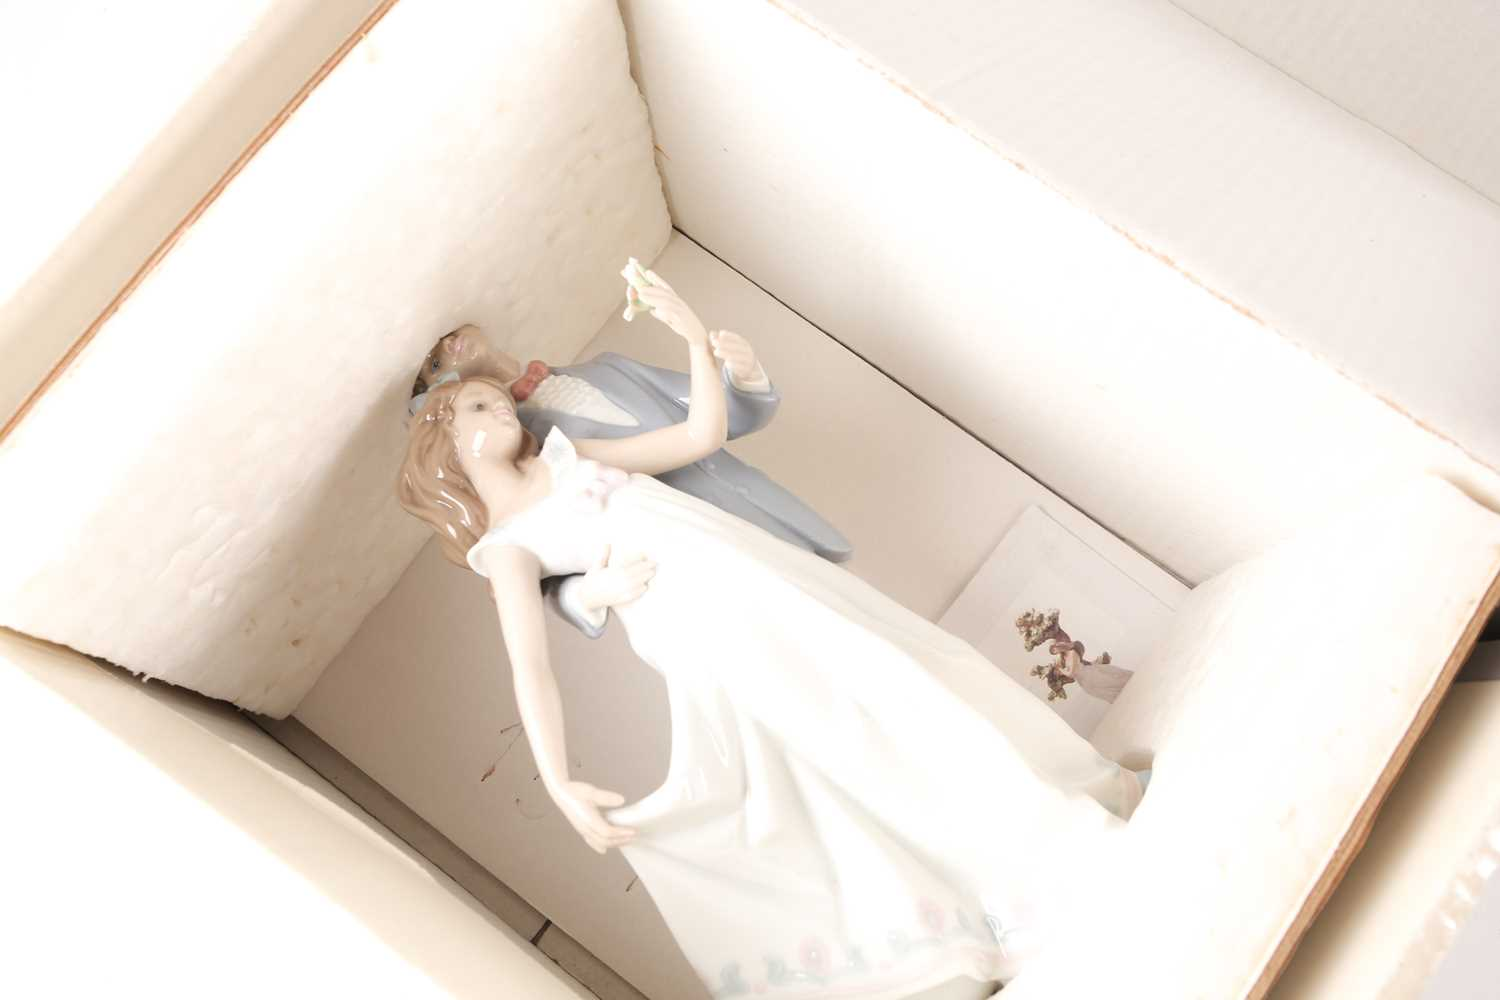 Six Lladro figures, Now & Forever (07642), A Wish Come True, (07676), Pals Forever, (07686), - Image 5 of 6